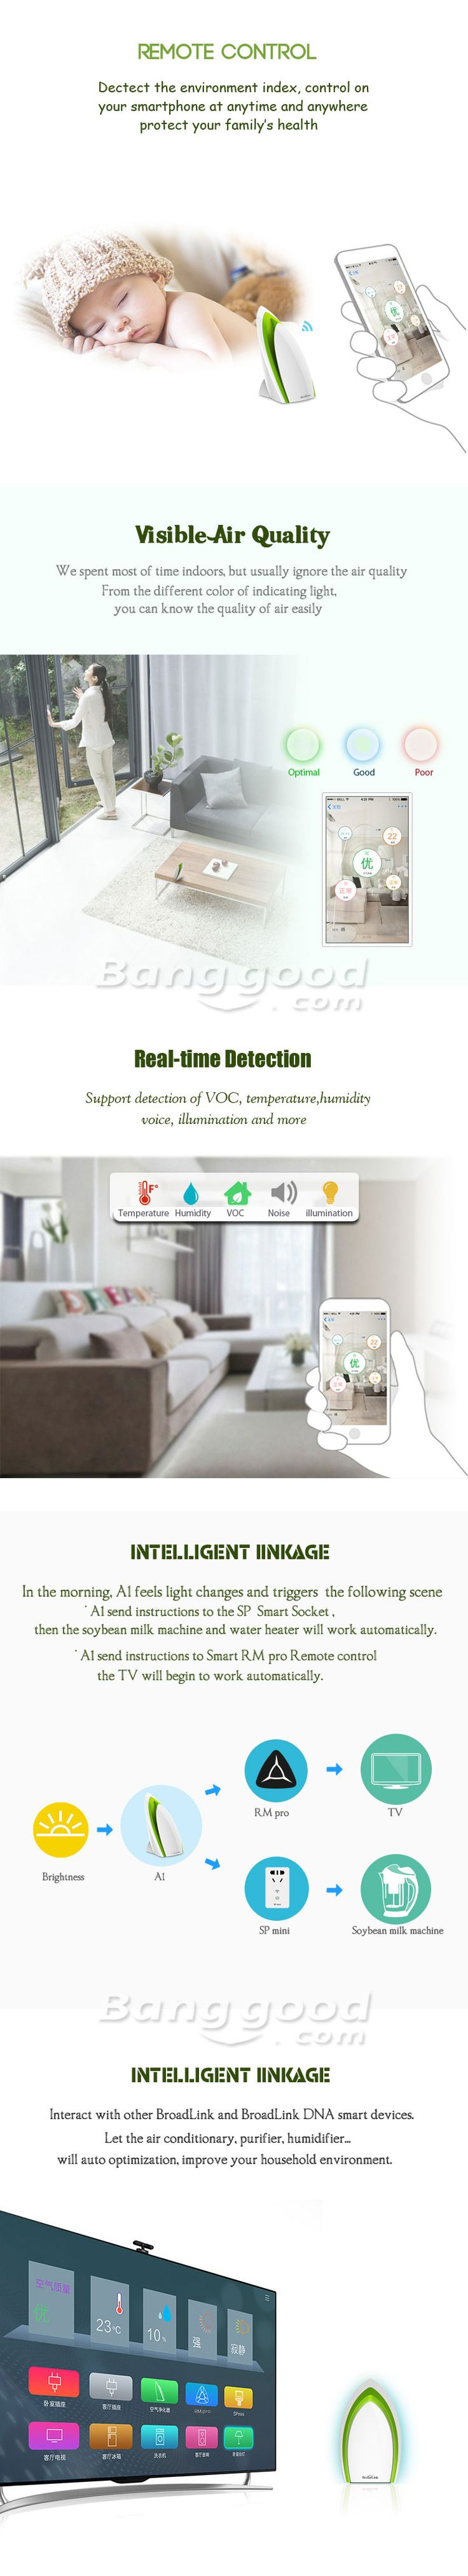 BroadLink A1 White WiFi Intelligent Smart Home Air Detector Sensor Purifier Remote Control at Banggood